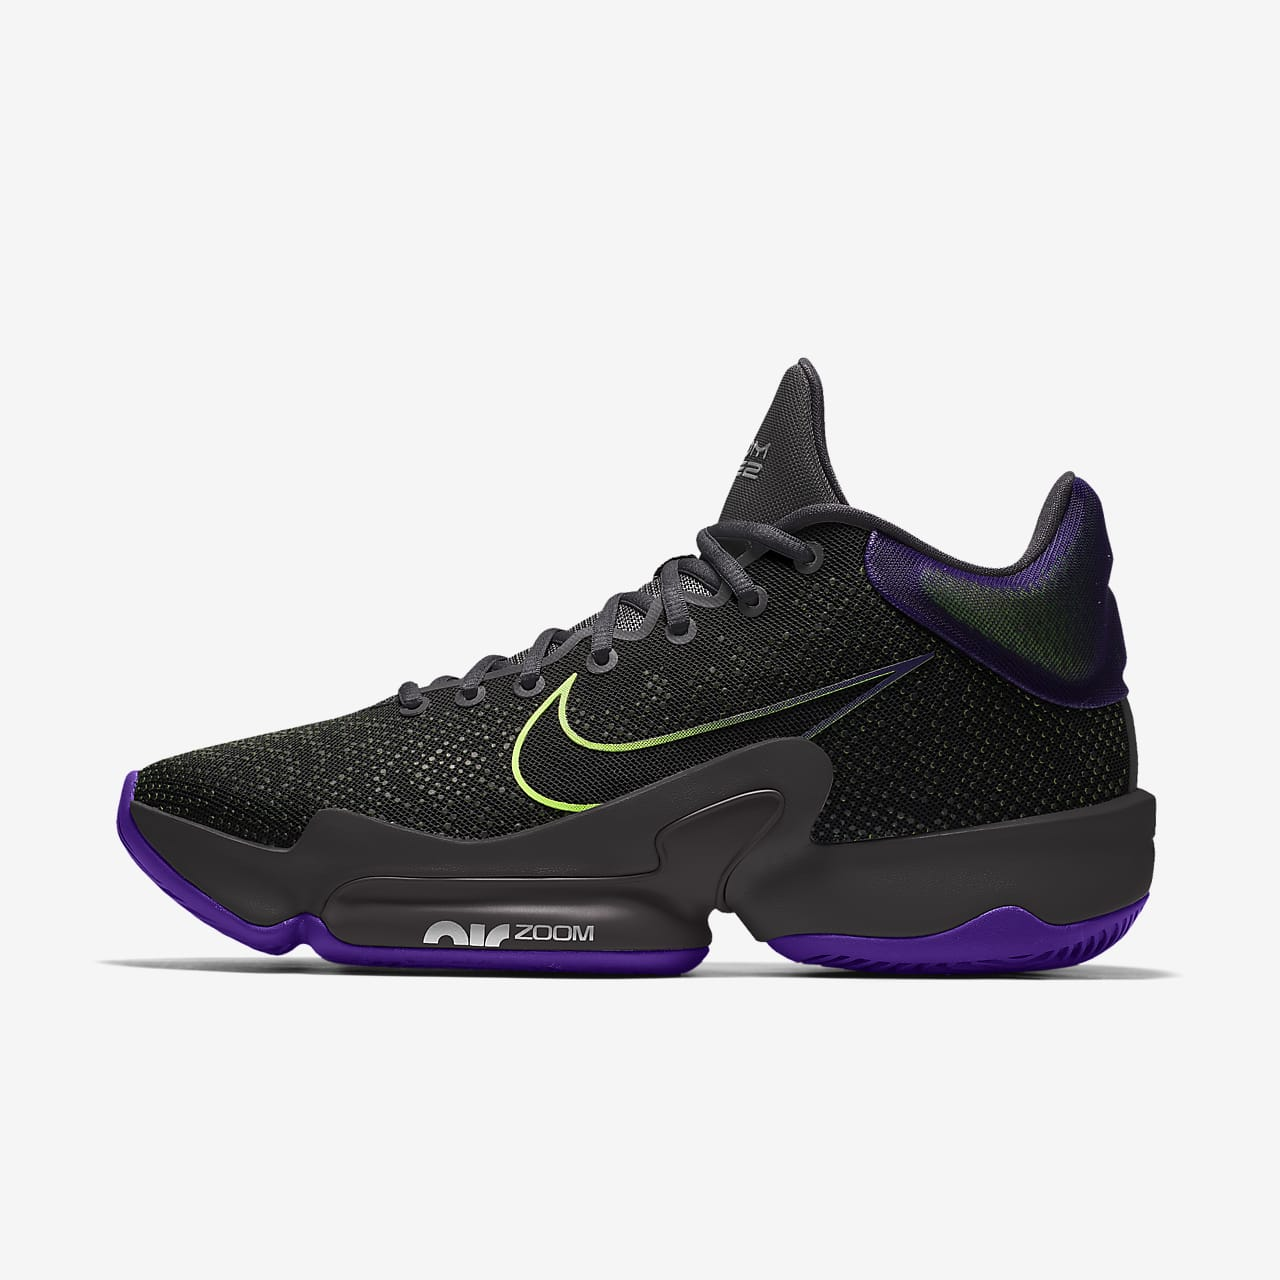 Nike Zoom Rize 2 By You 專屬訂製籃球鞋